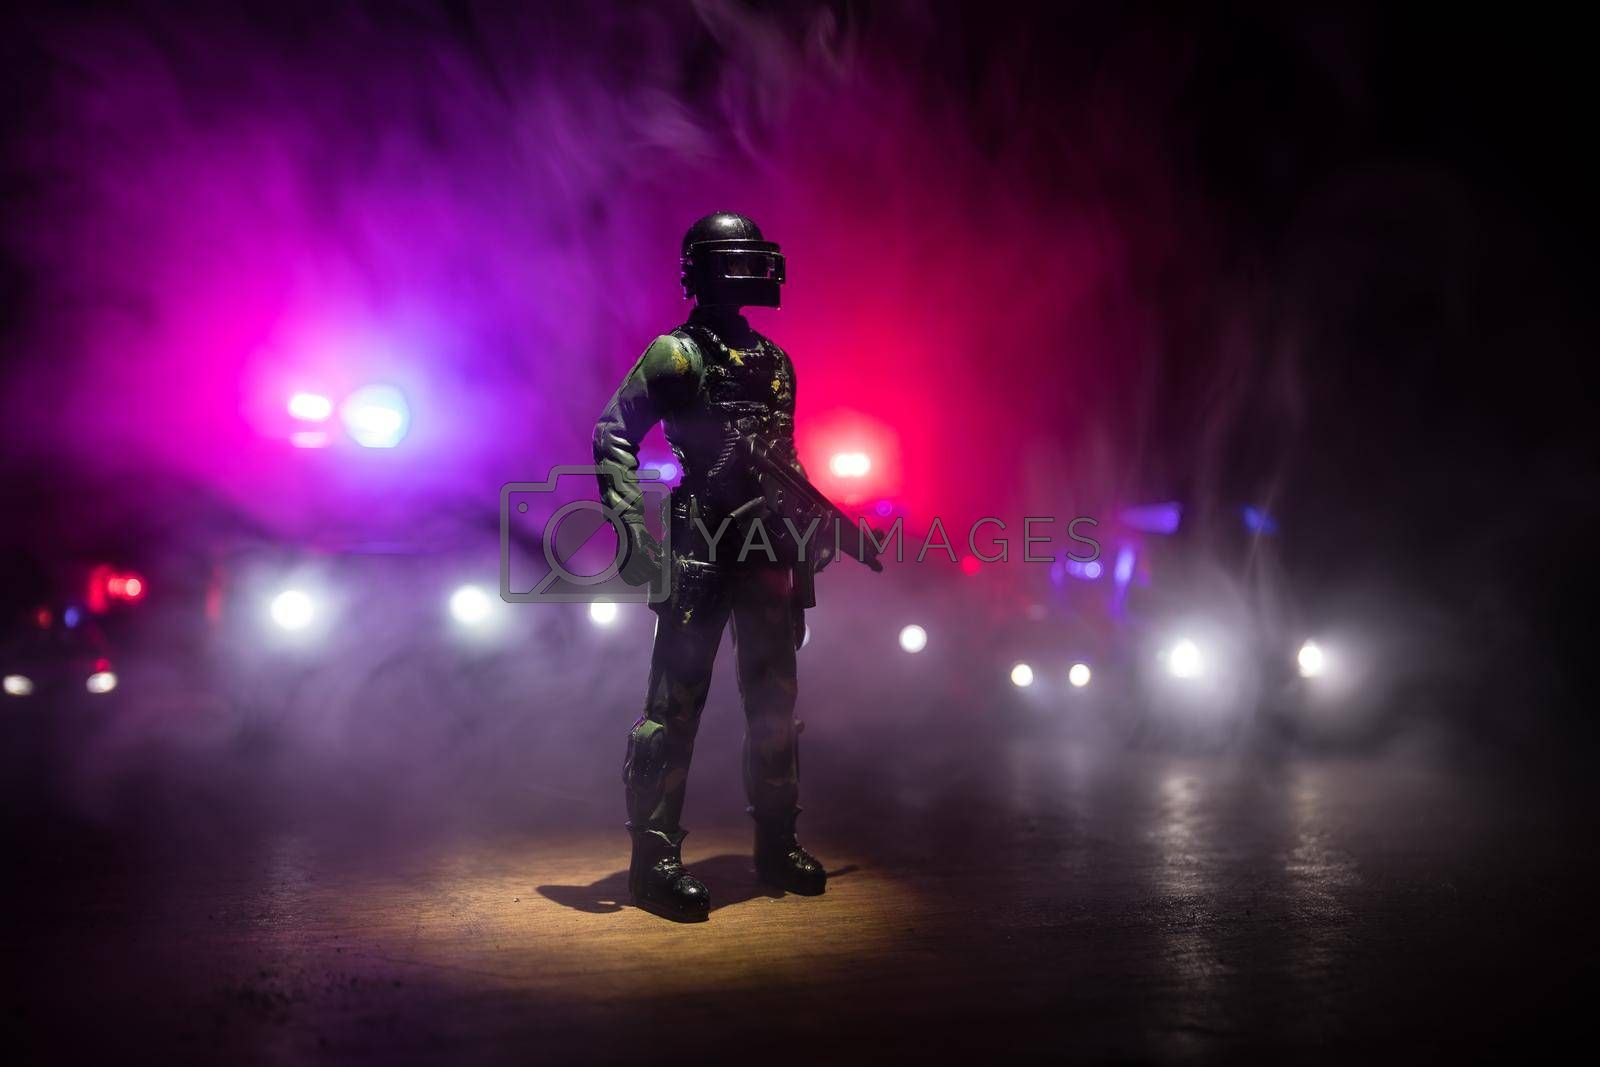 Anti-riot police give signal to be ready. Government power concept. Spec ops police in action. Smoke on a dark background with lights. Blue red flashing sirens. Selective focus